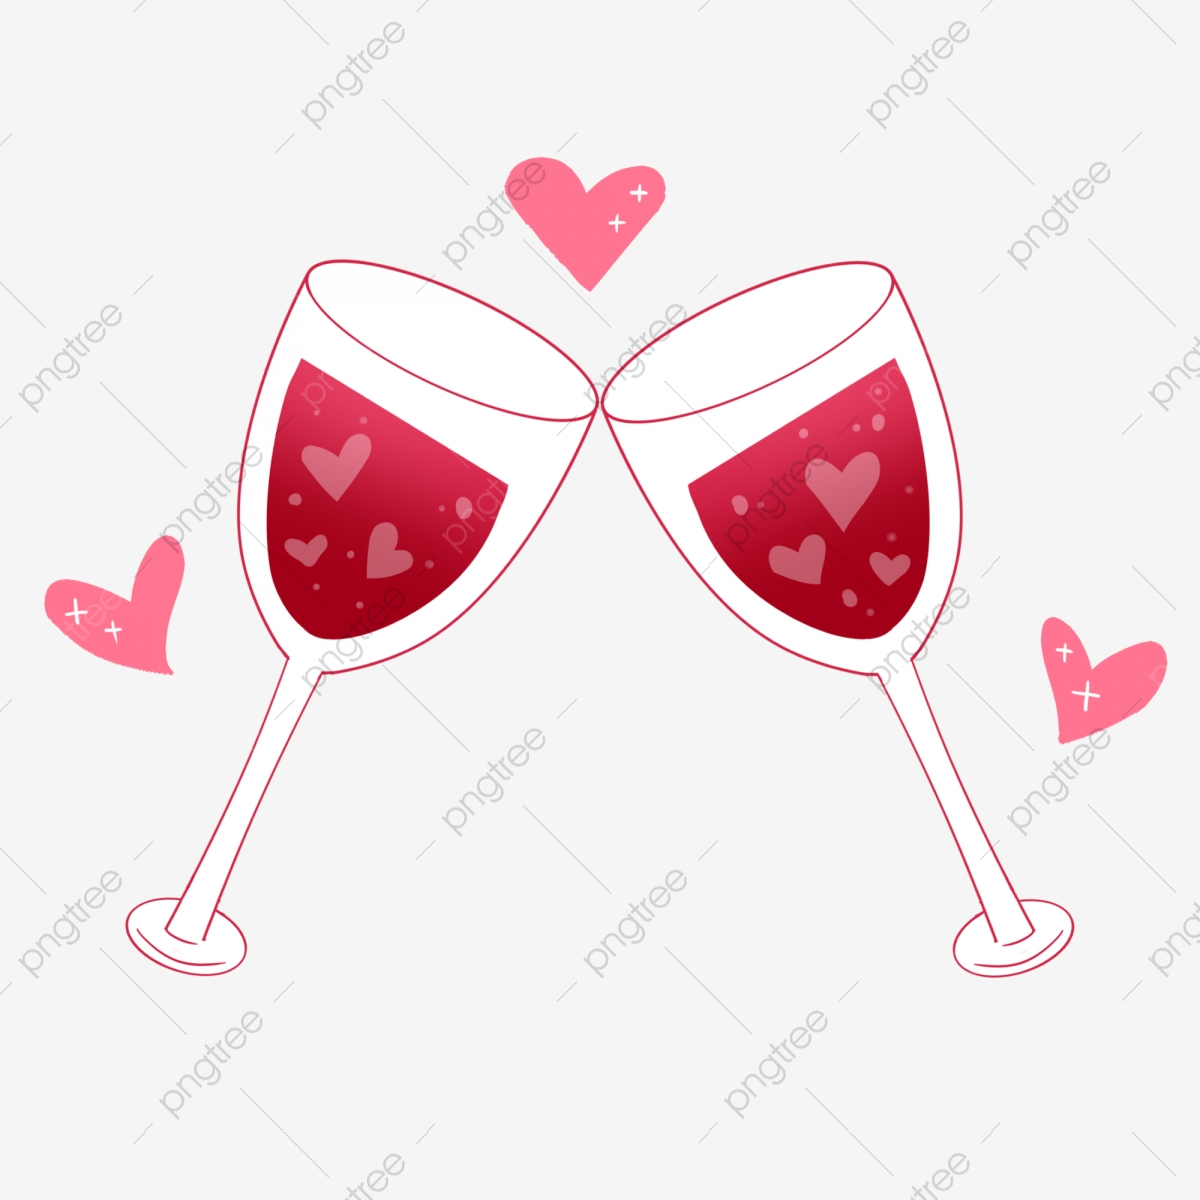 Love S Toast Red Wine Illustration Love Wine Cartoon Illustration Wine Illustration Png Transparent Clipart Image And Psd File For Free Download